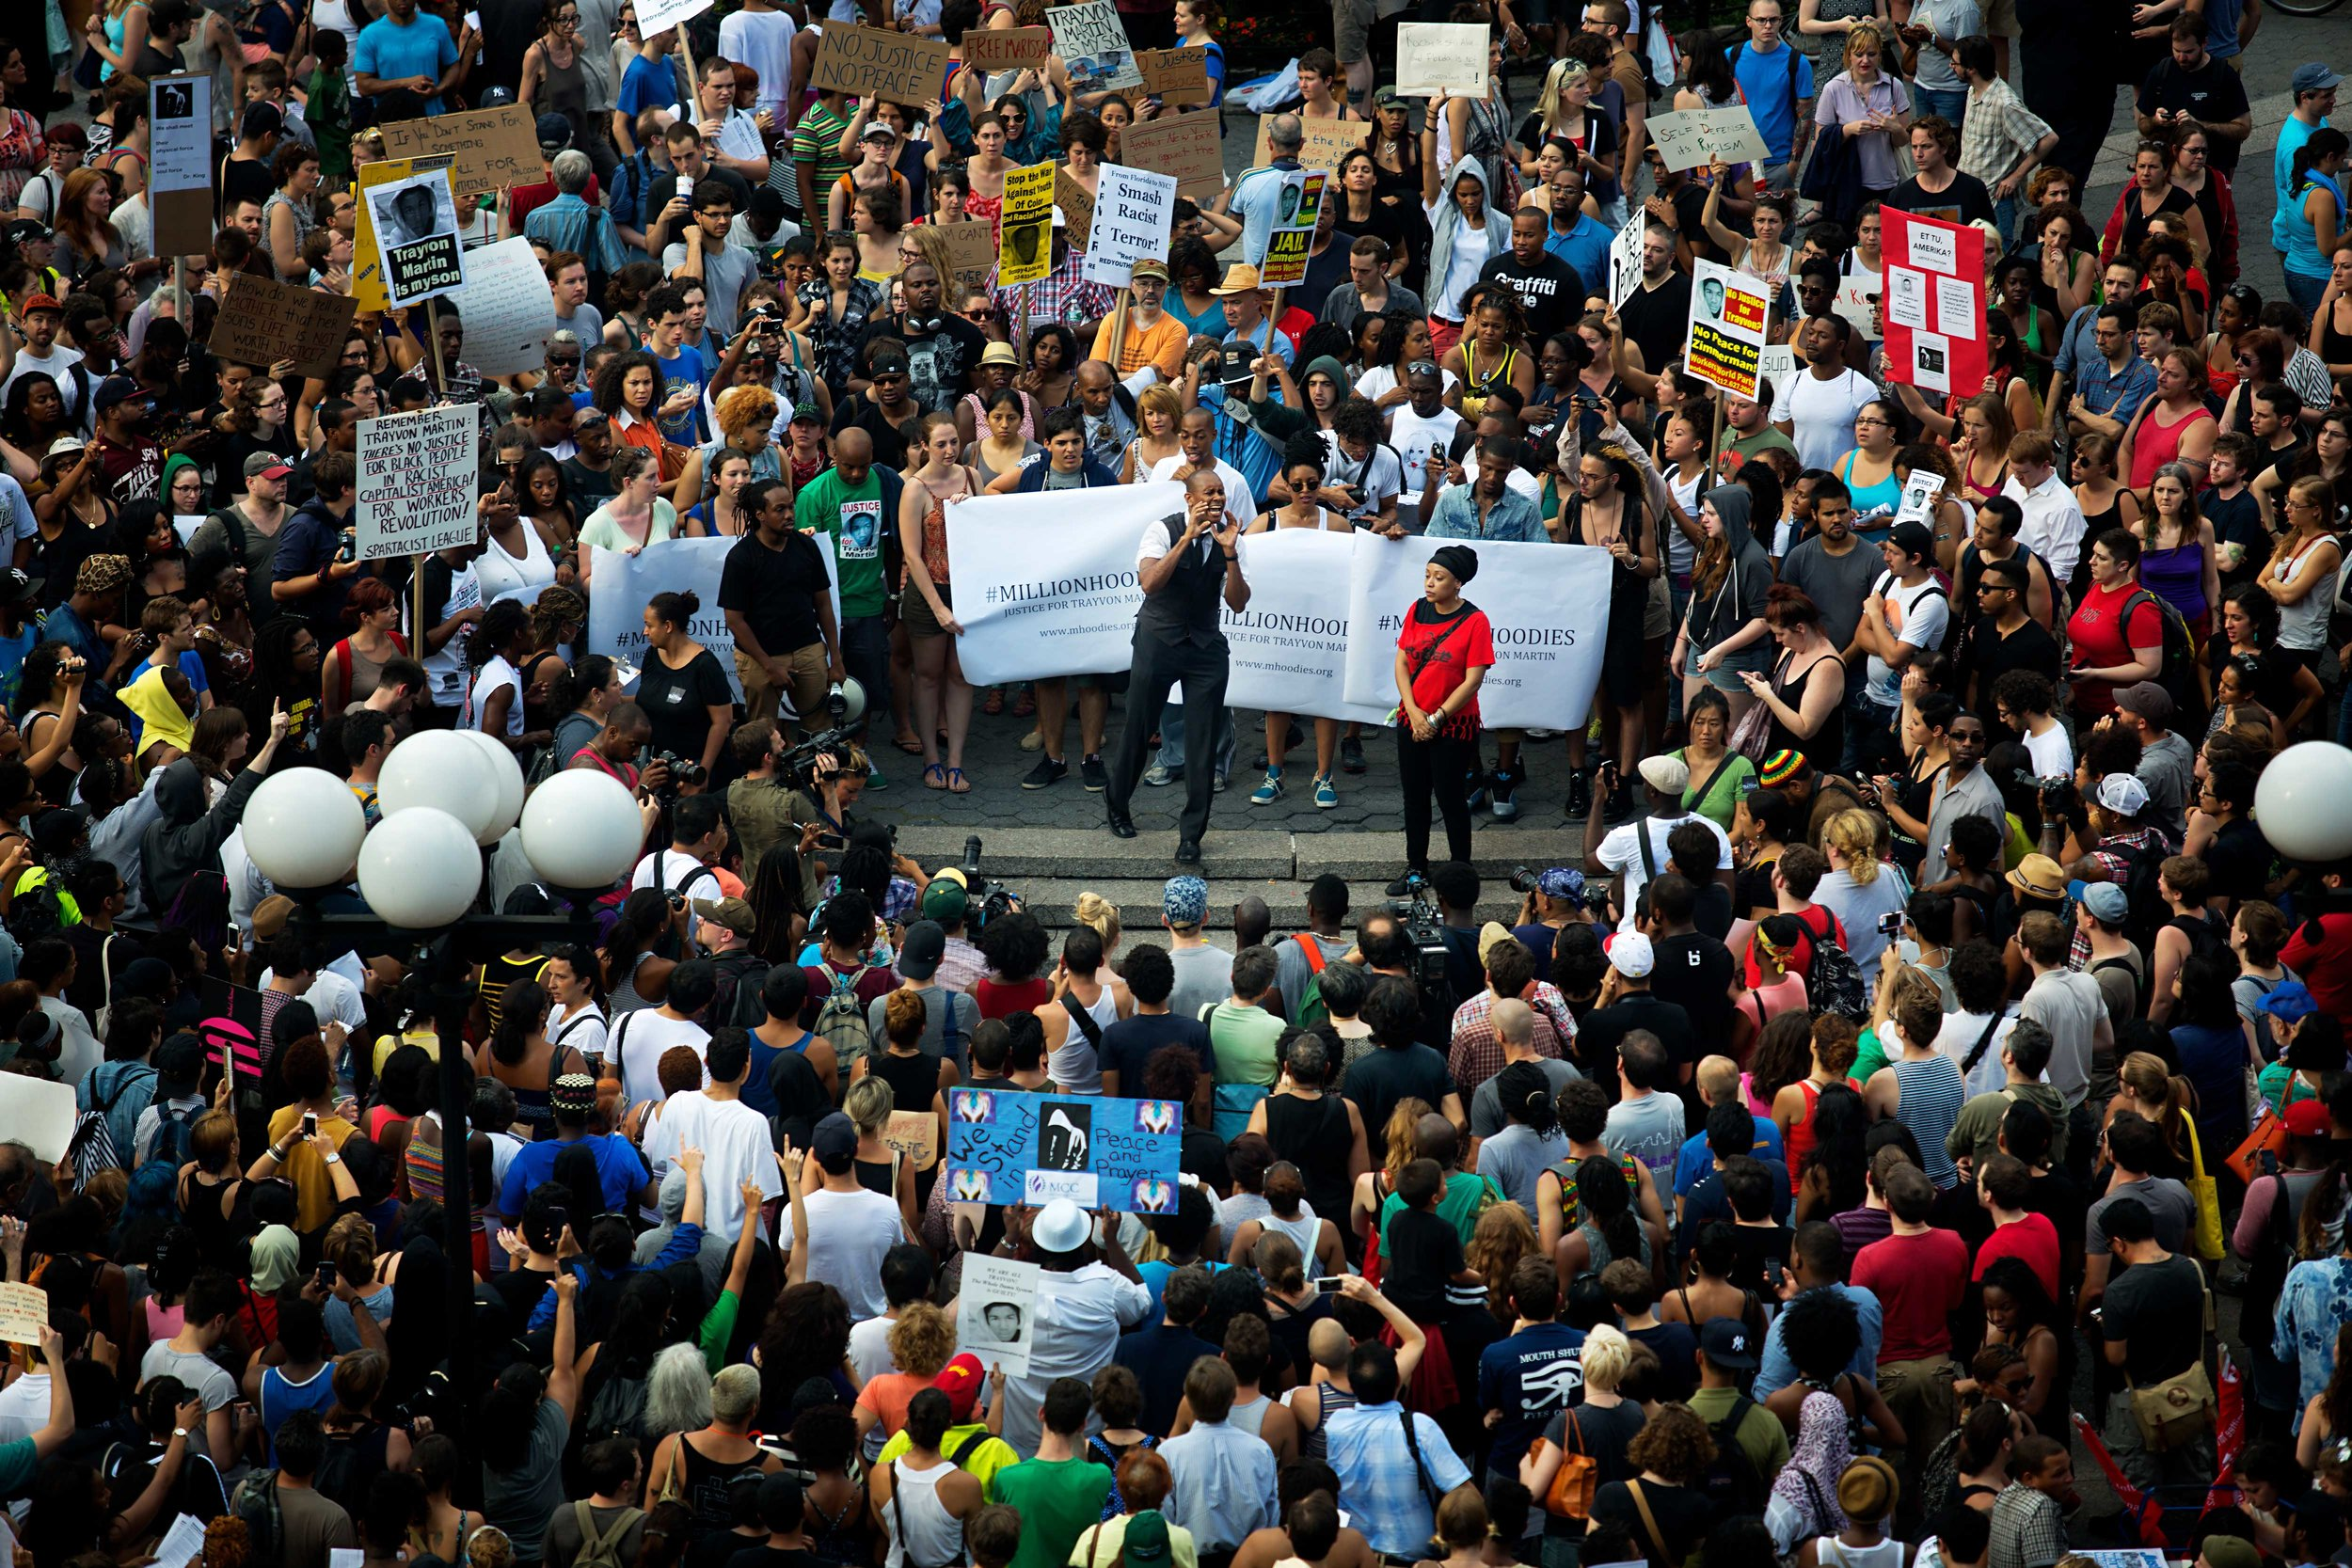 Over 1000 protesters gathered at Union Square Park New York, NY after the 'not guilty' verdict was announced in the case of George Zimmerman.